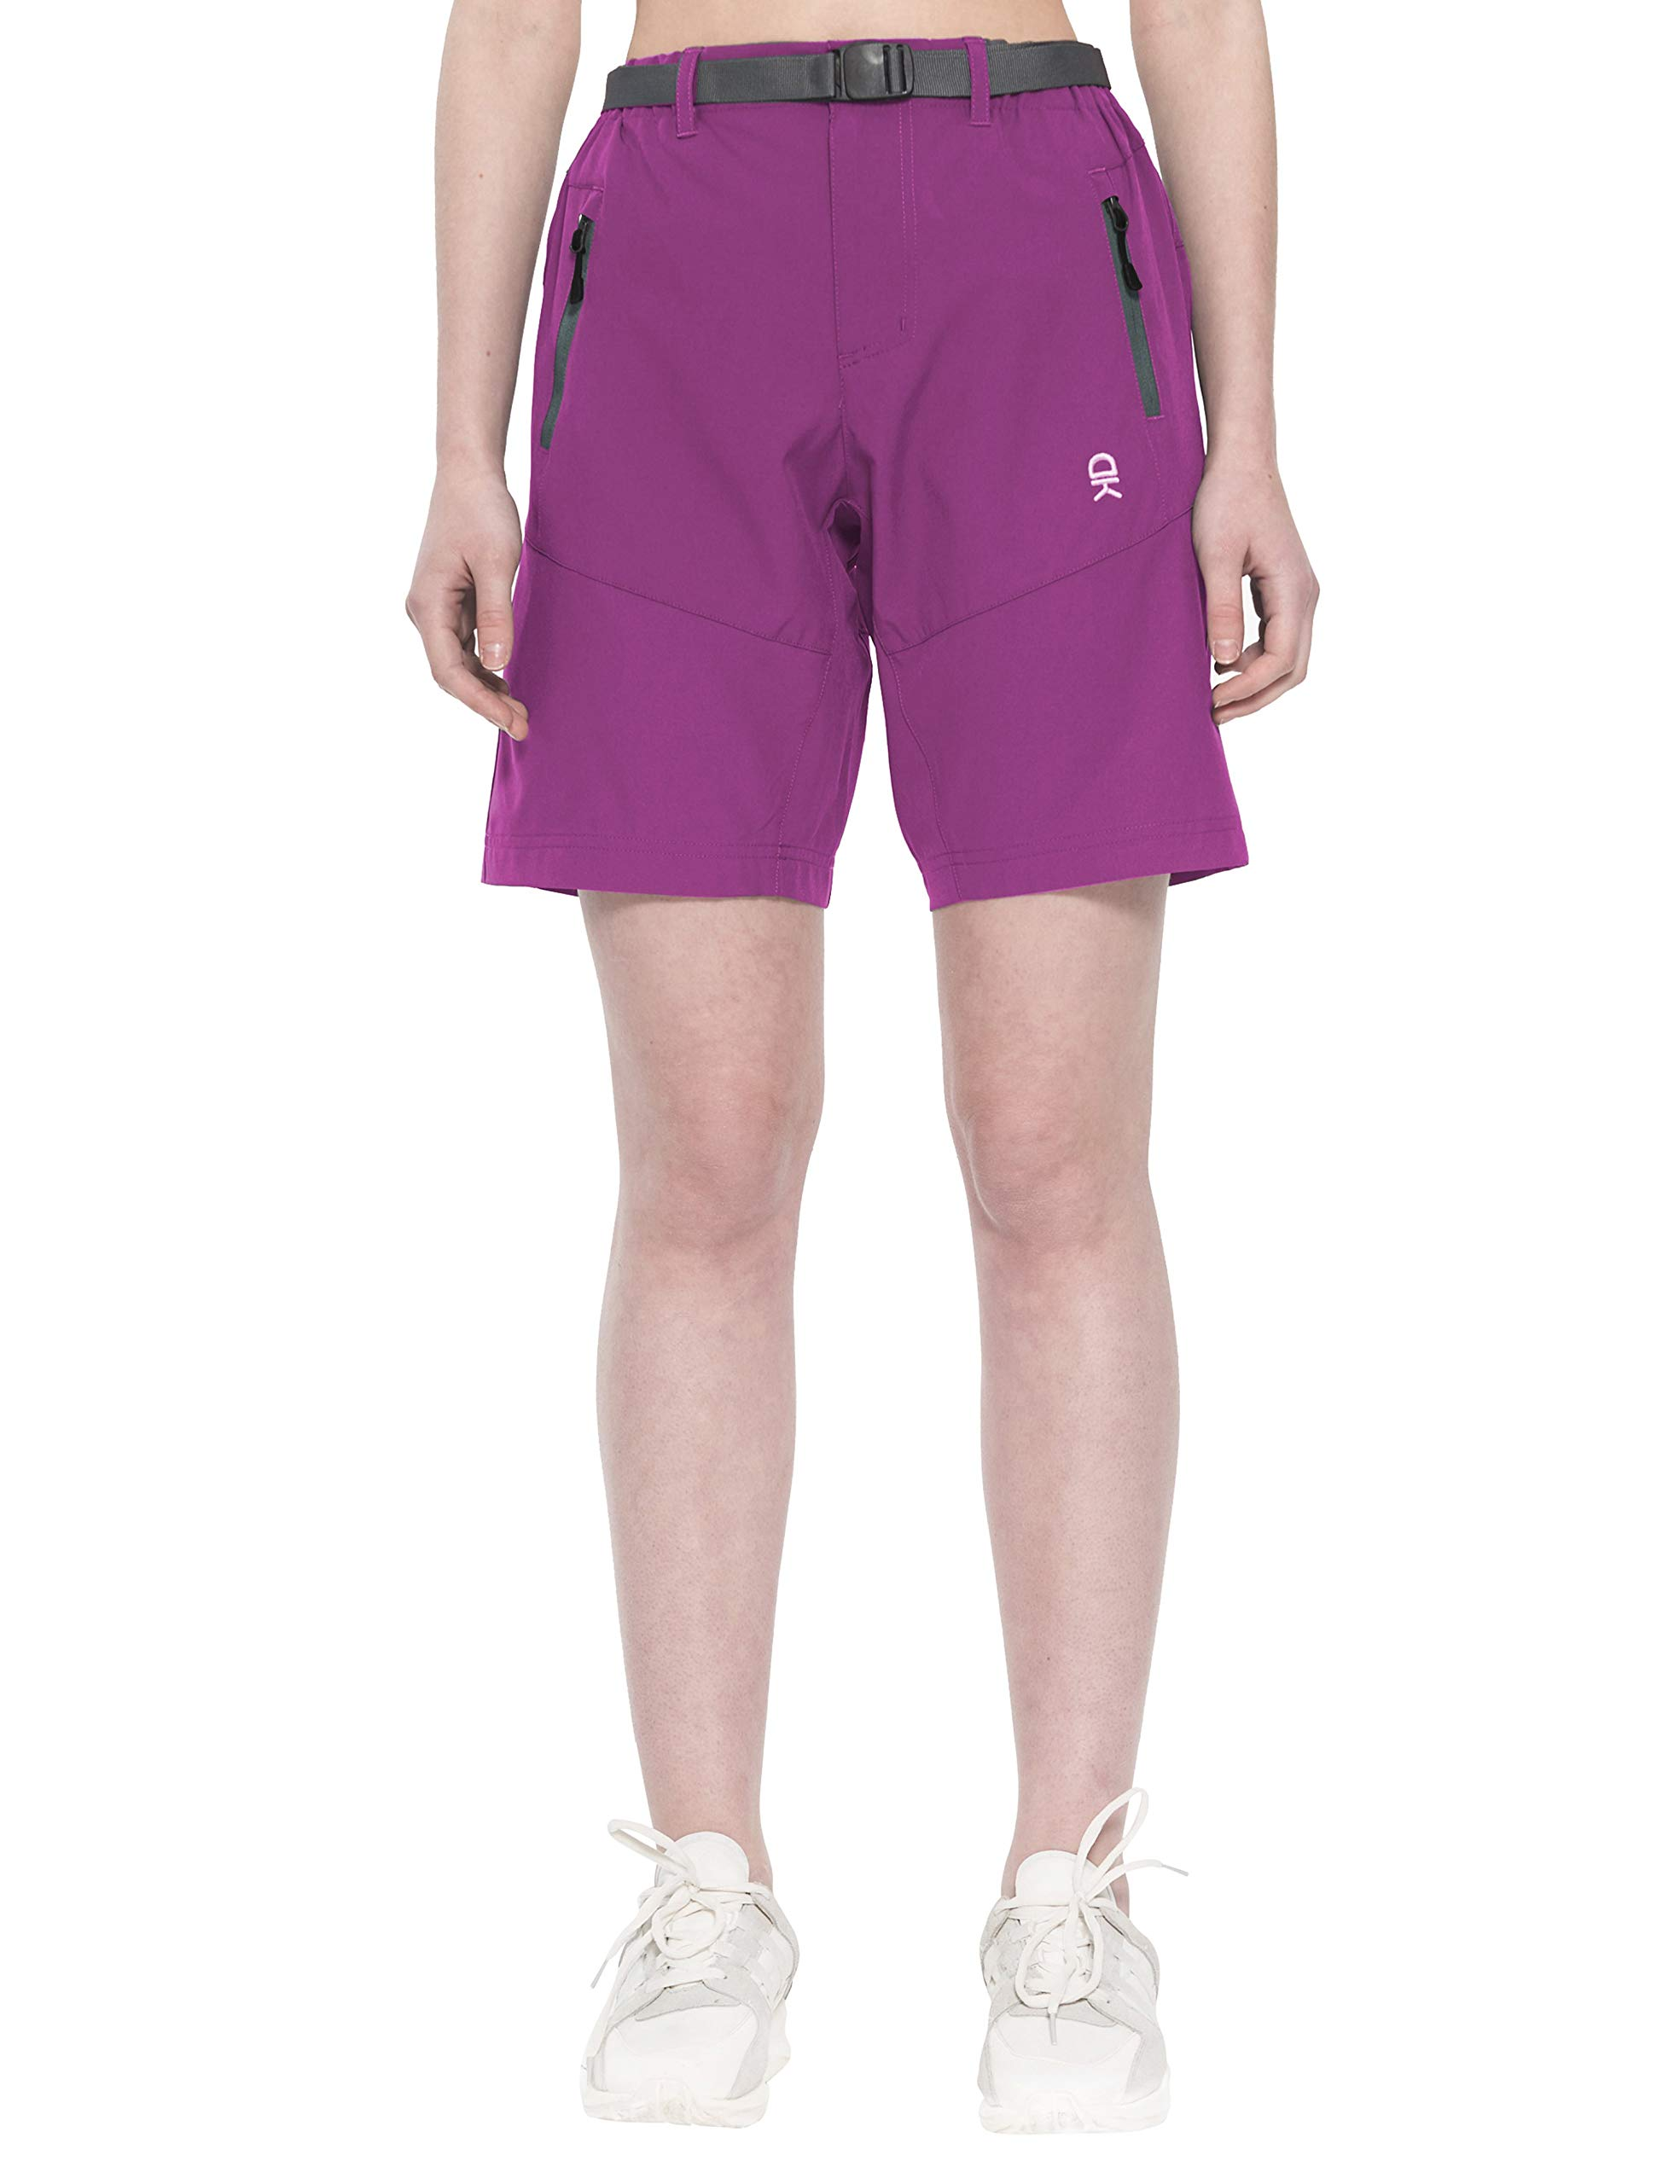 Little Donkey Andy Women's Stretch Quick Dry Cargo Shorts for Hiking, Camping, Travel Purple Size S by Little Donkey Andy